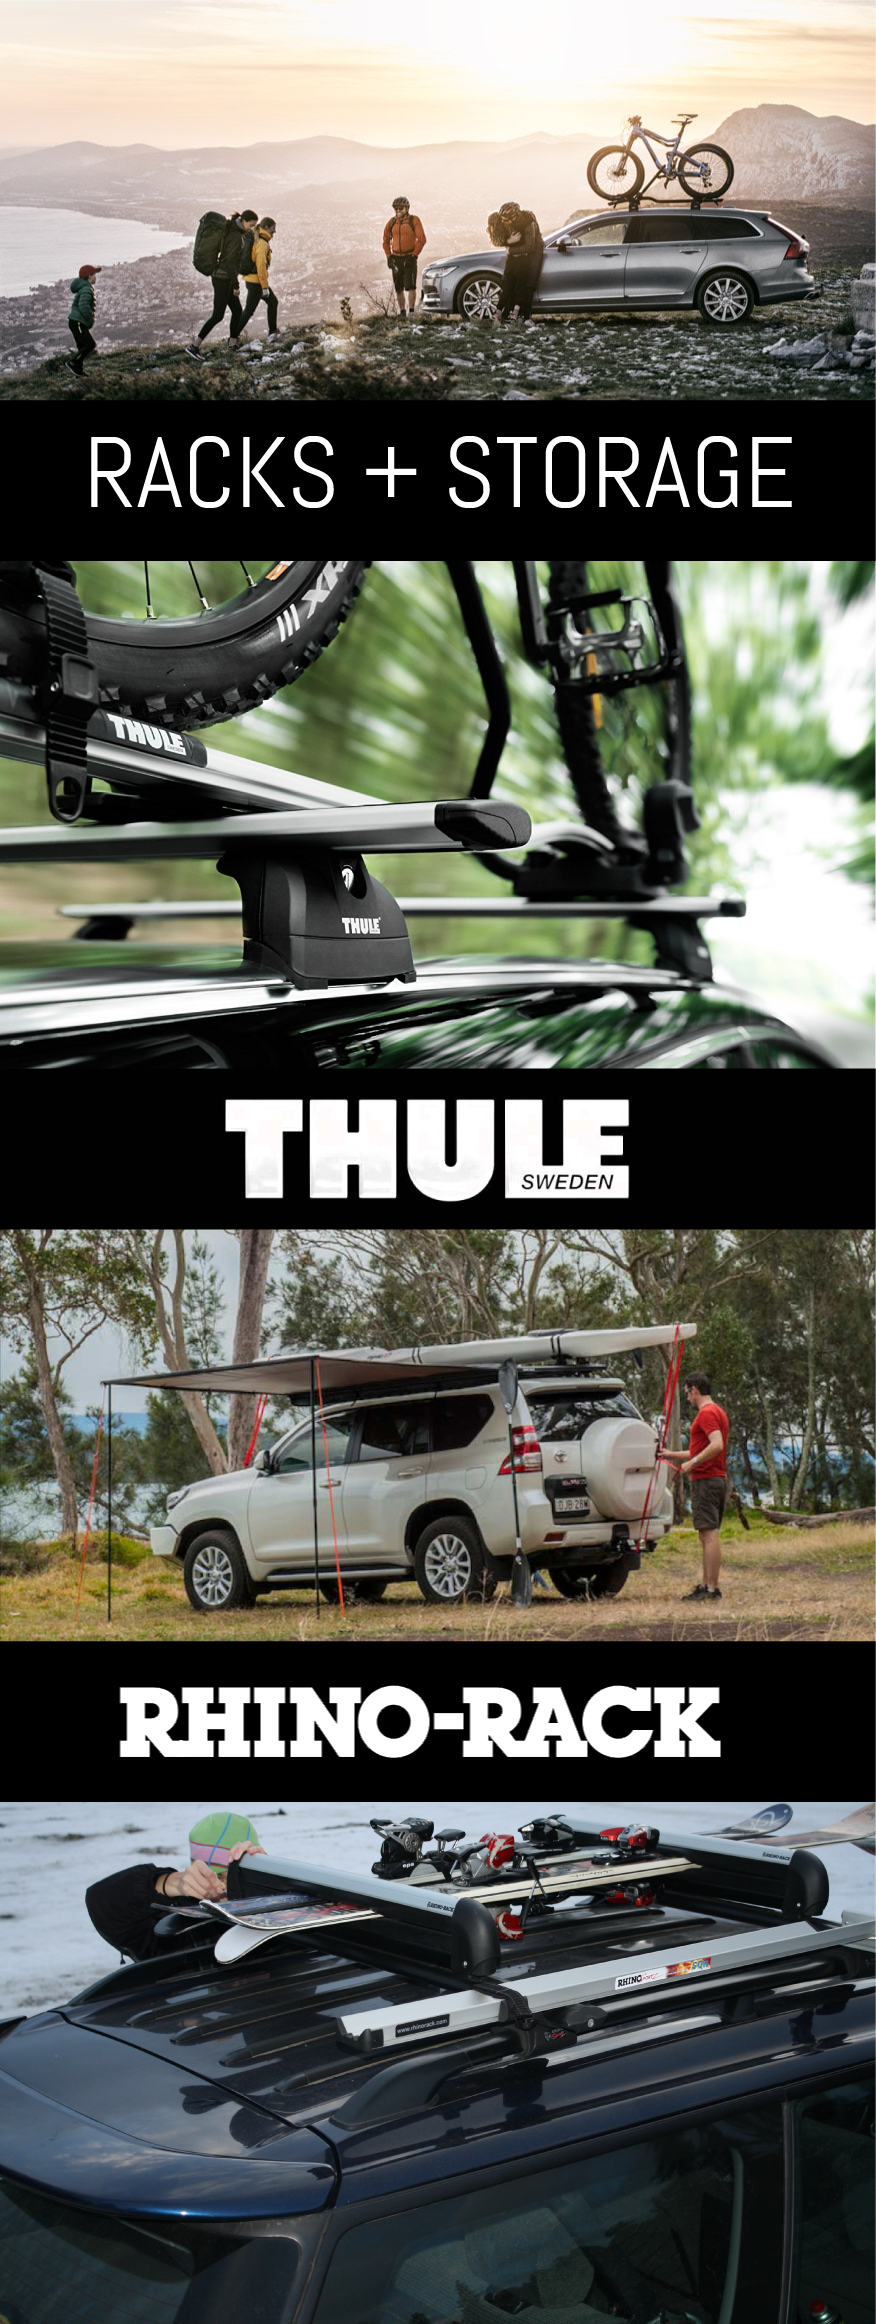 Thule-Rhino-Rack-Specialized-Truck-&-SUV.png